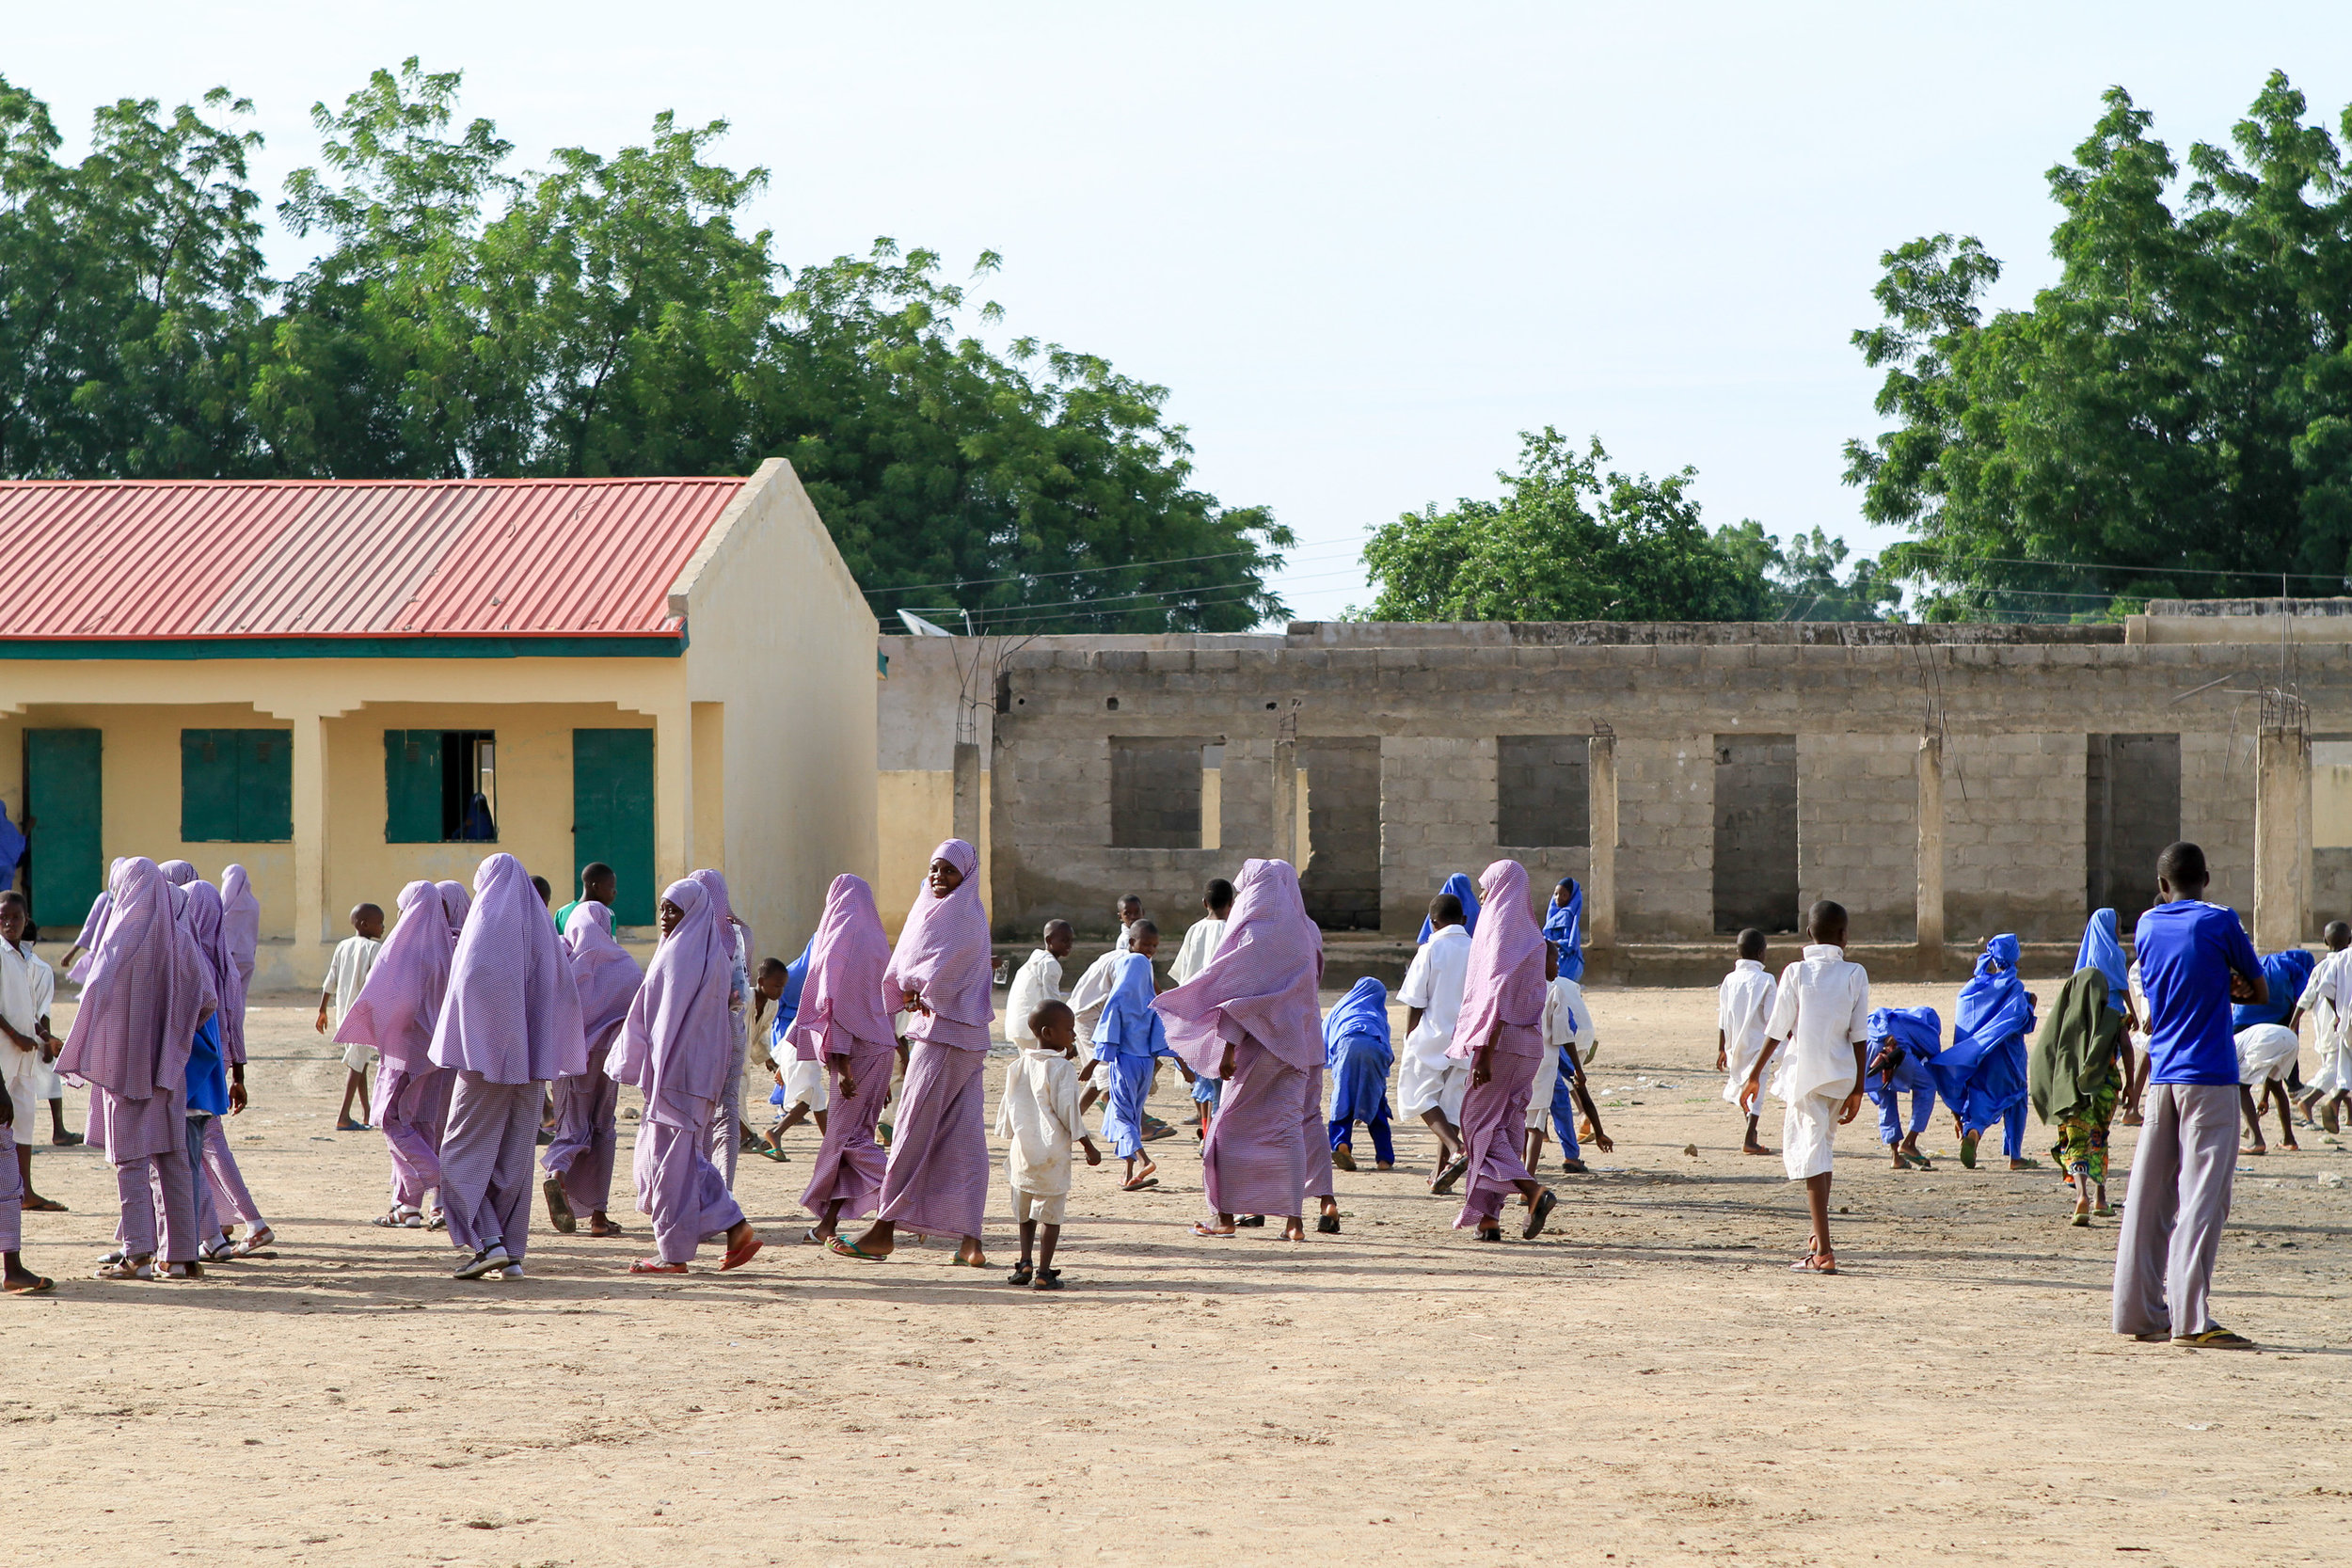 As the bell rings, the kids run back to their classrooms.